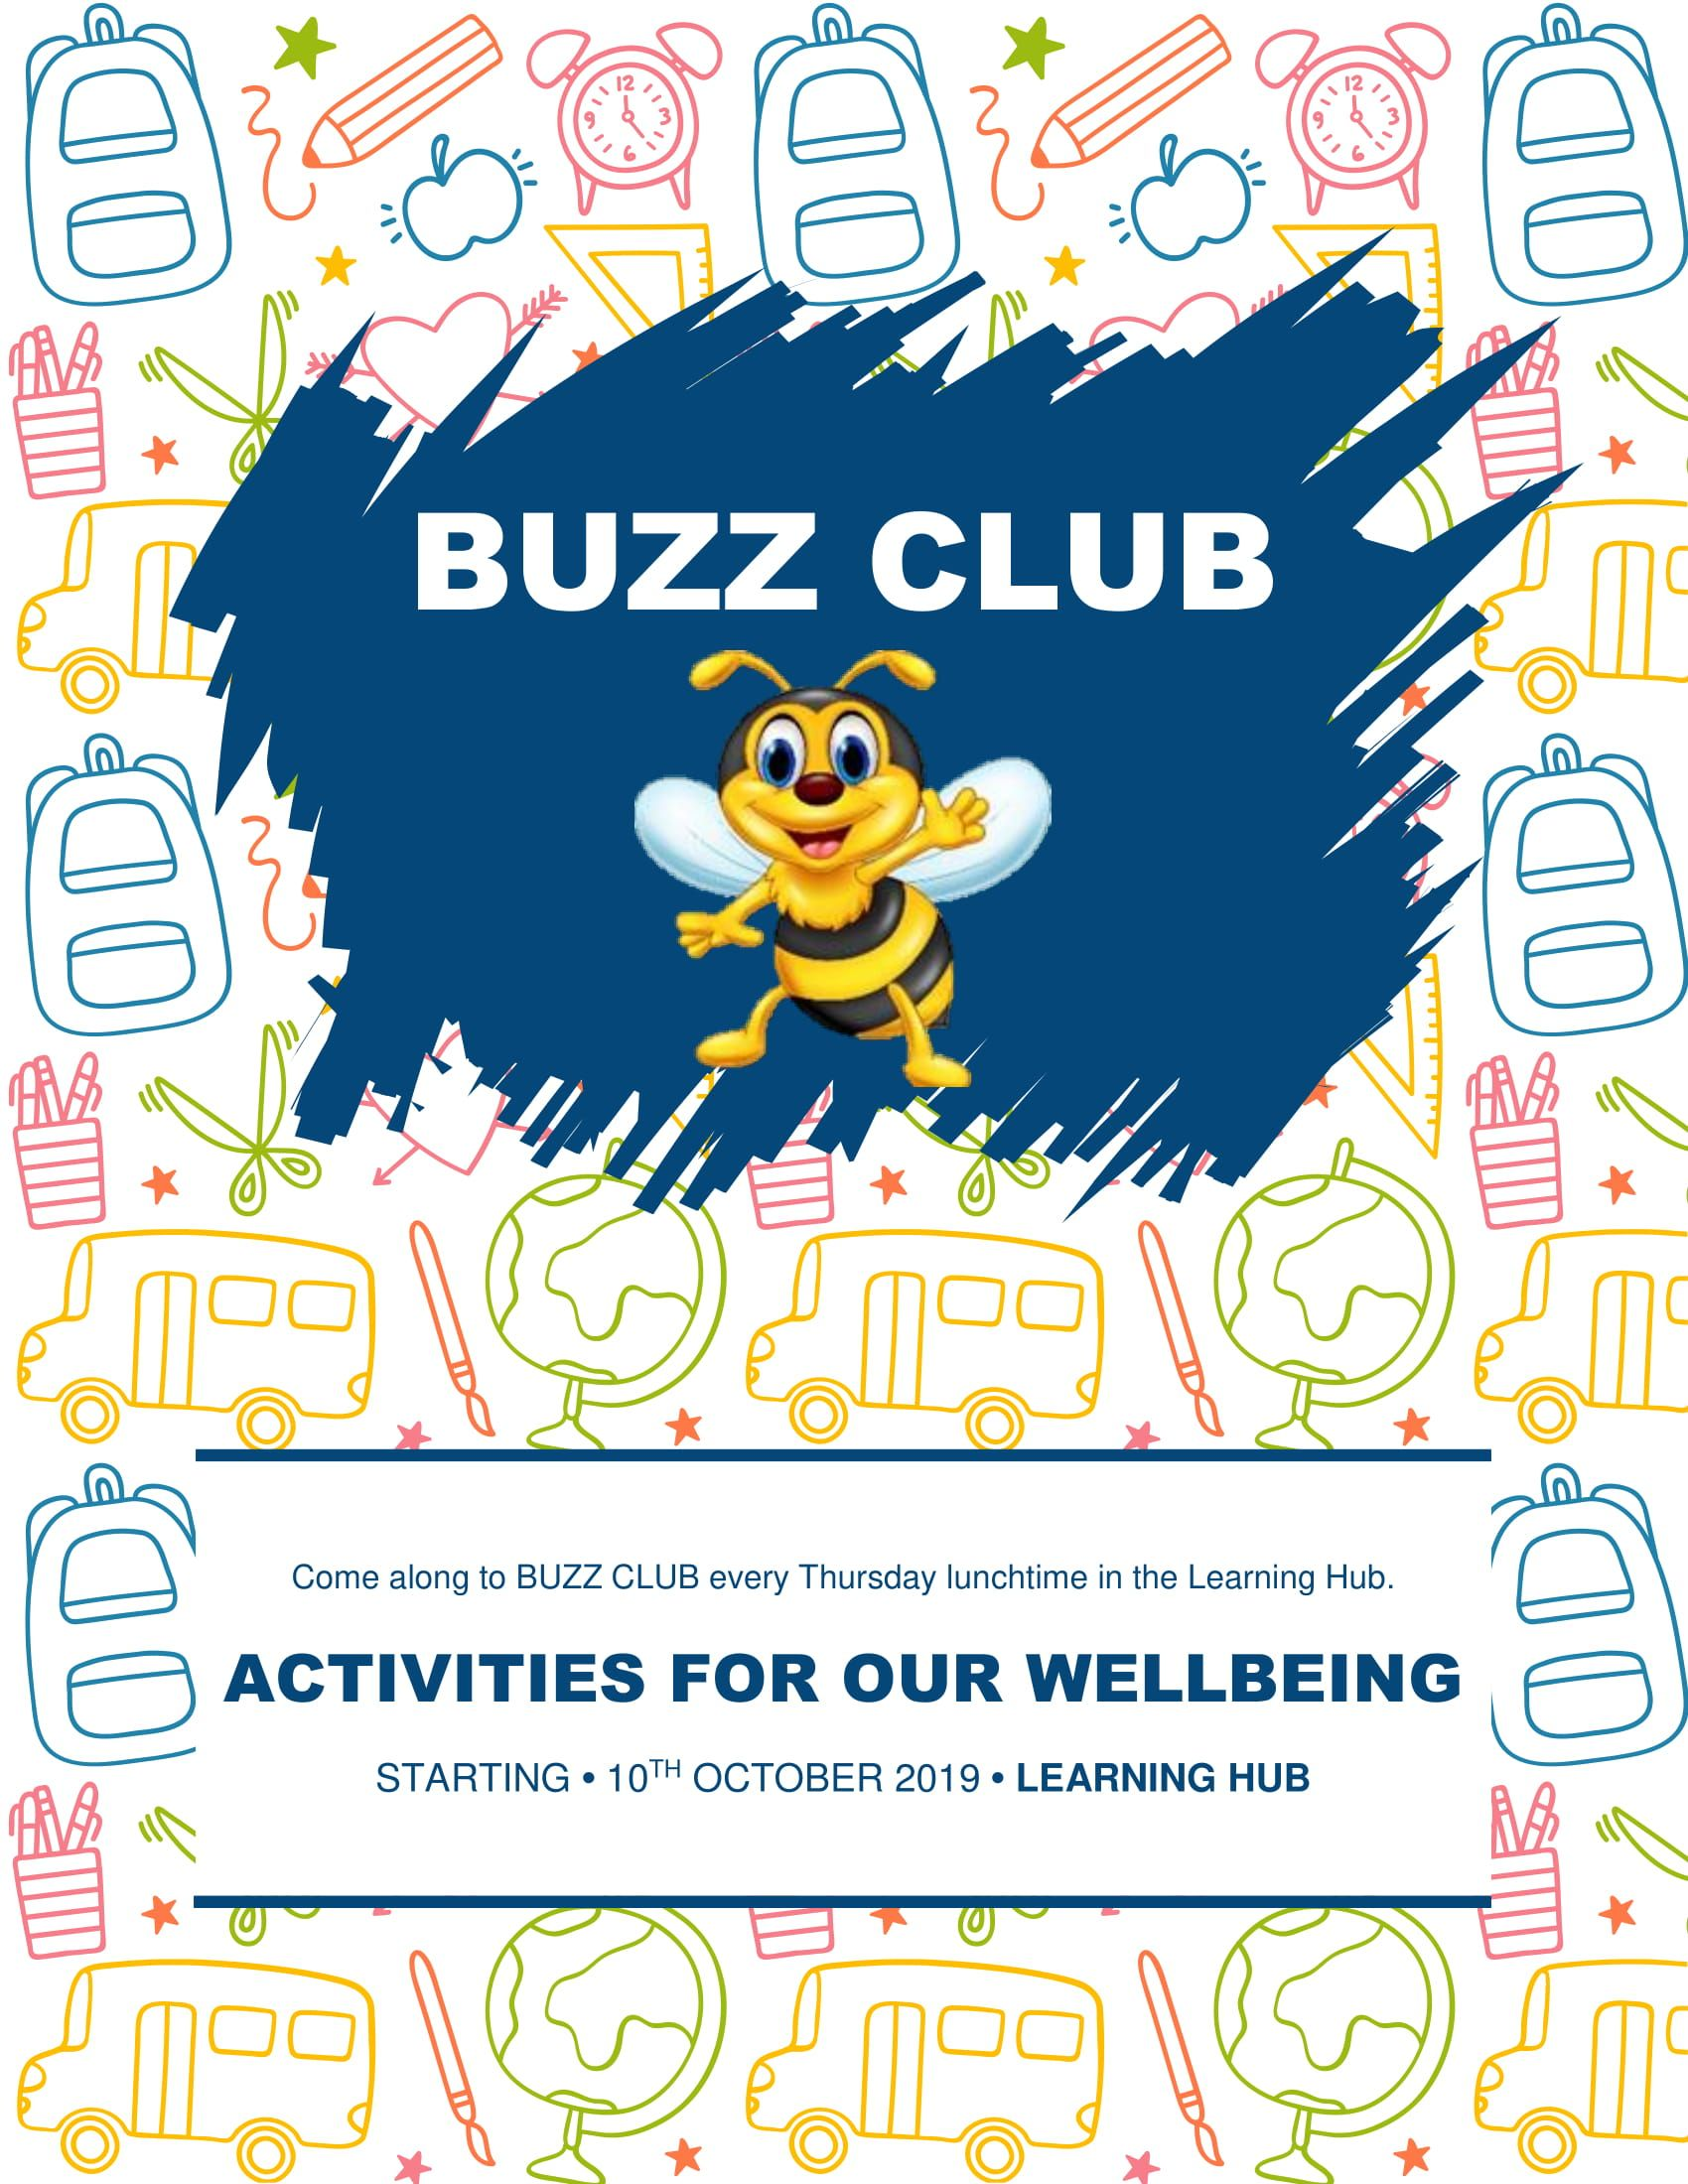 Thursday Buzz Club Wellbeing activities, Wellbeing